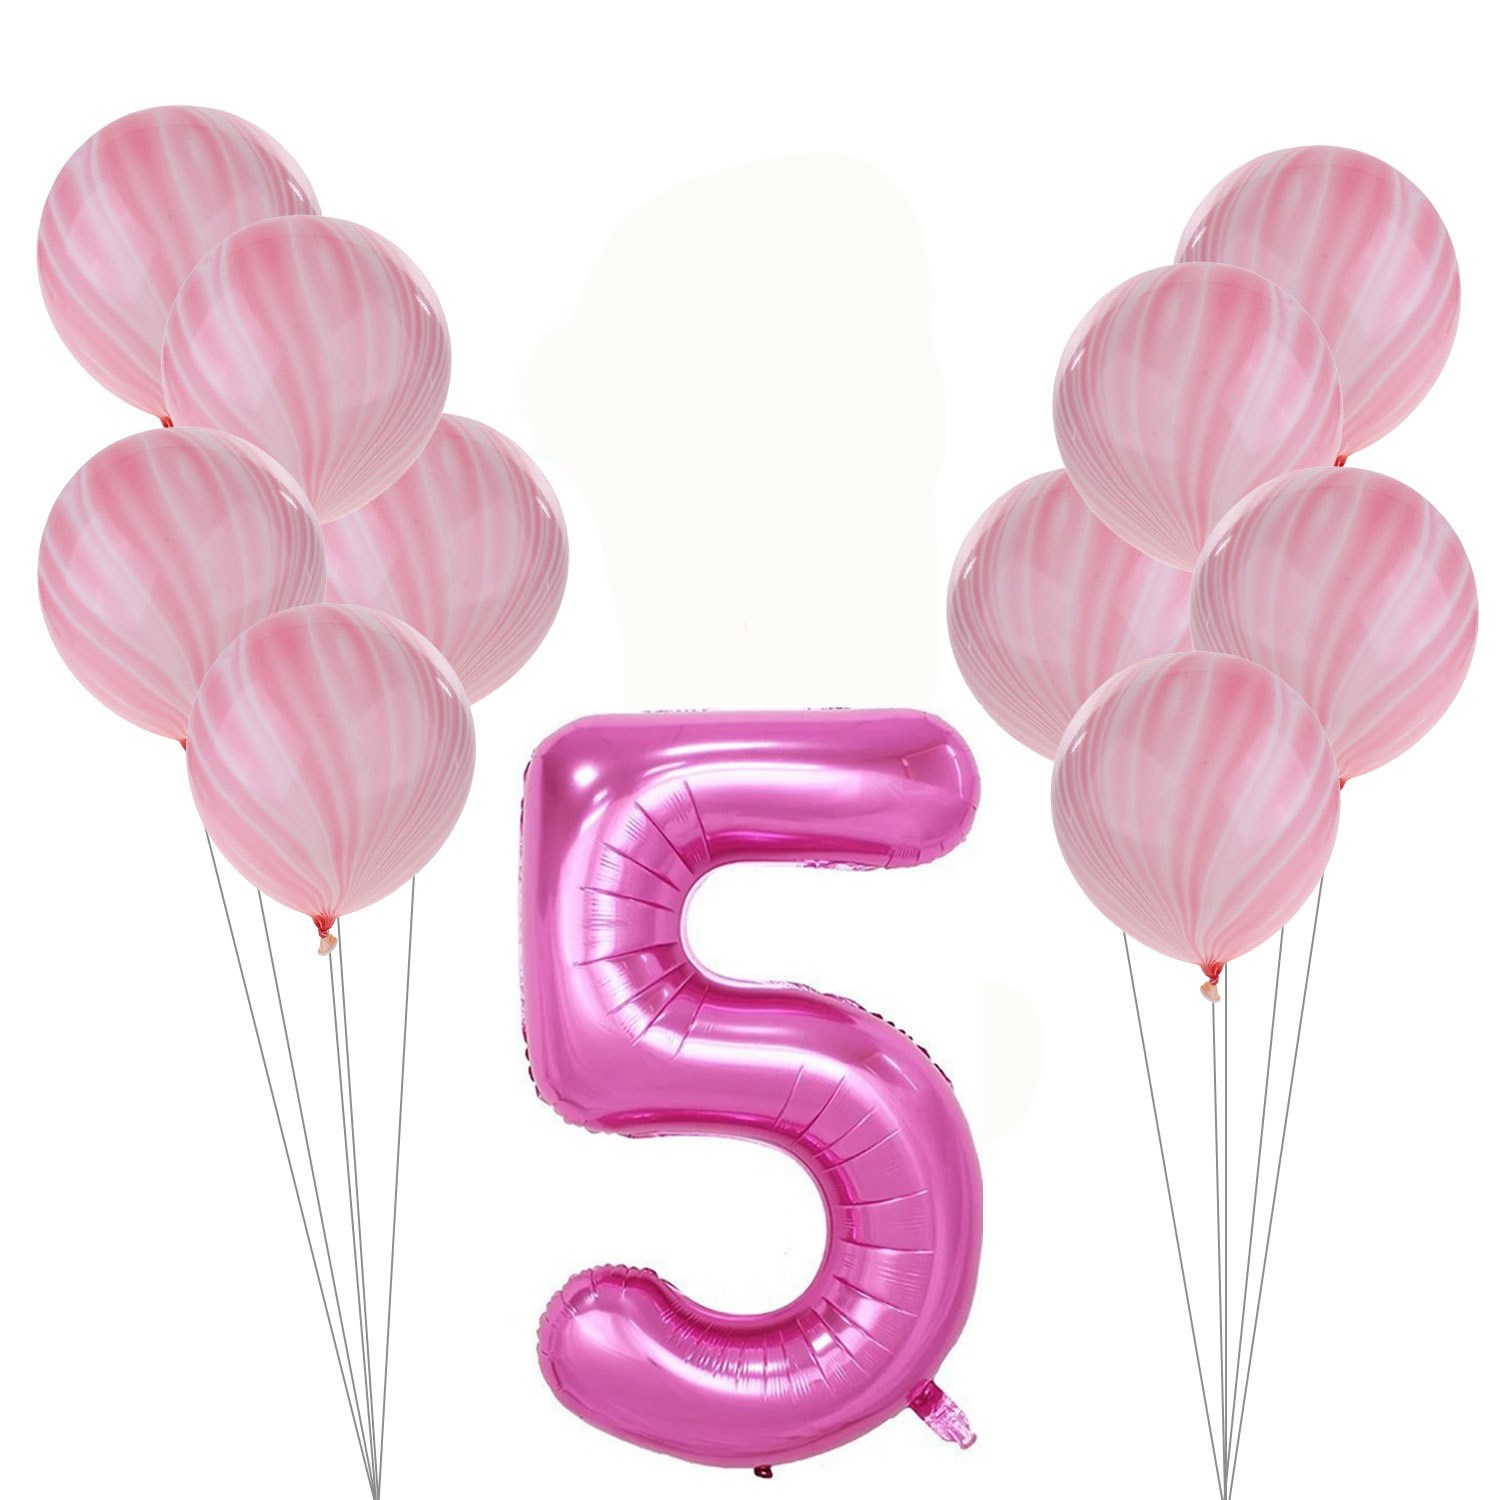 Blue Boy 1st 2nd Birthday Decoration Pink Girl Balloons Number Balloon 1 2 3 4 5 Year Old Kids Party Supplies